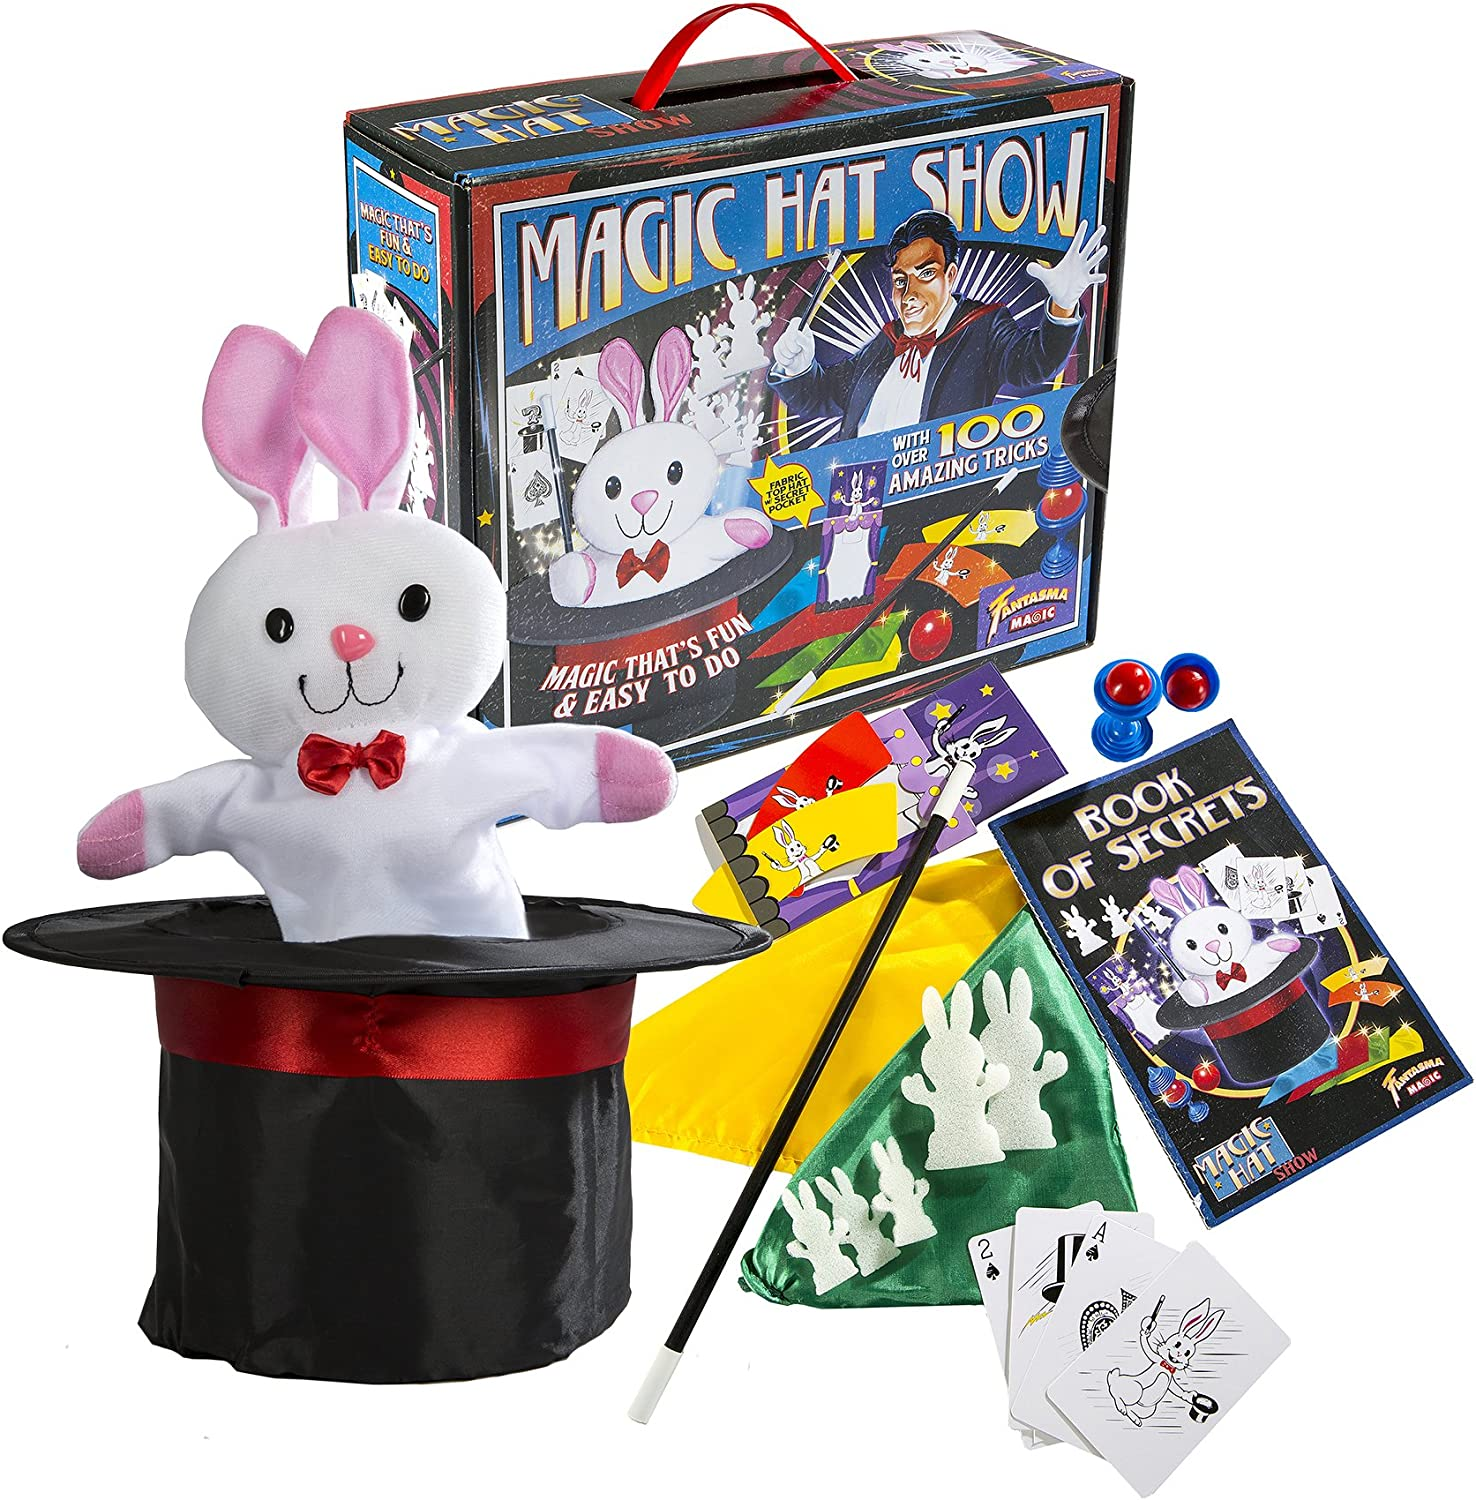 Fantasma Toys Retro Magic Hat Show - 100 Fun and Easy Tricks - Includes Fabric Top Hat with Secret Pocket - Made with Small Hands in Mind - For Ages 5 and Up